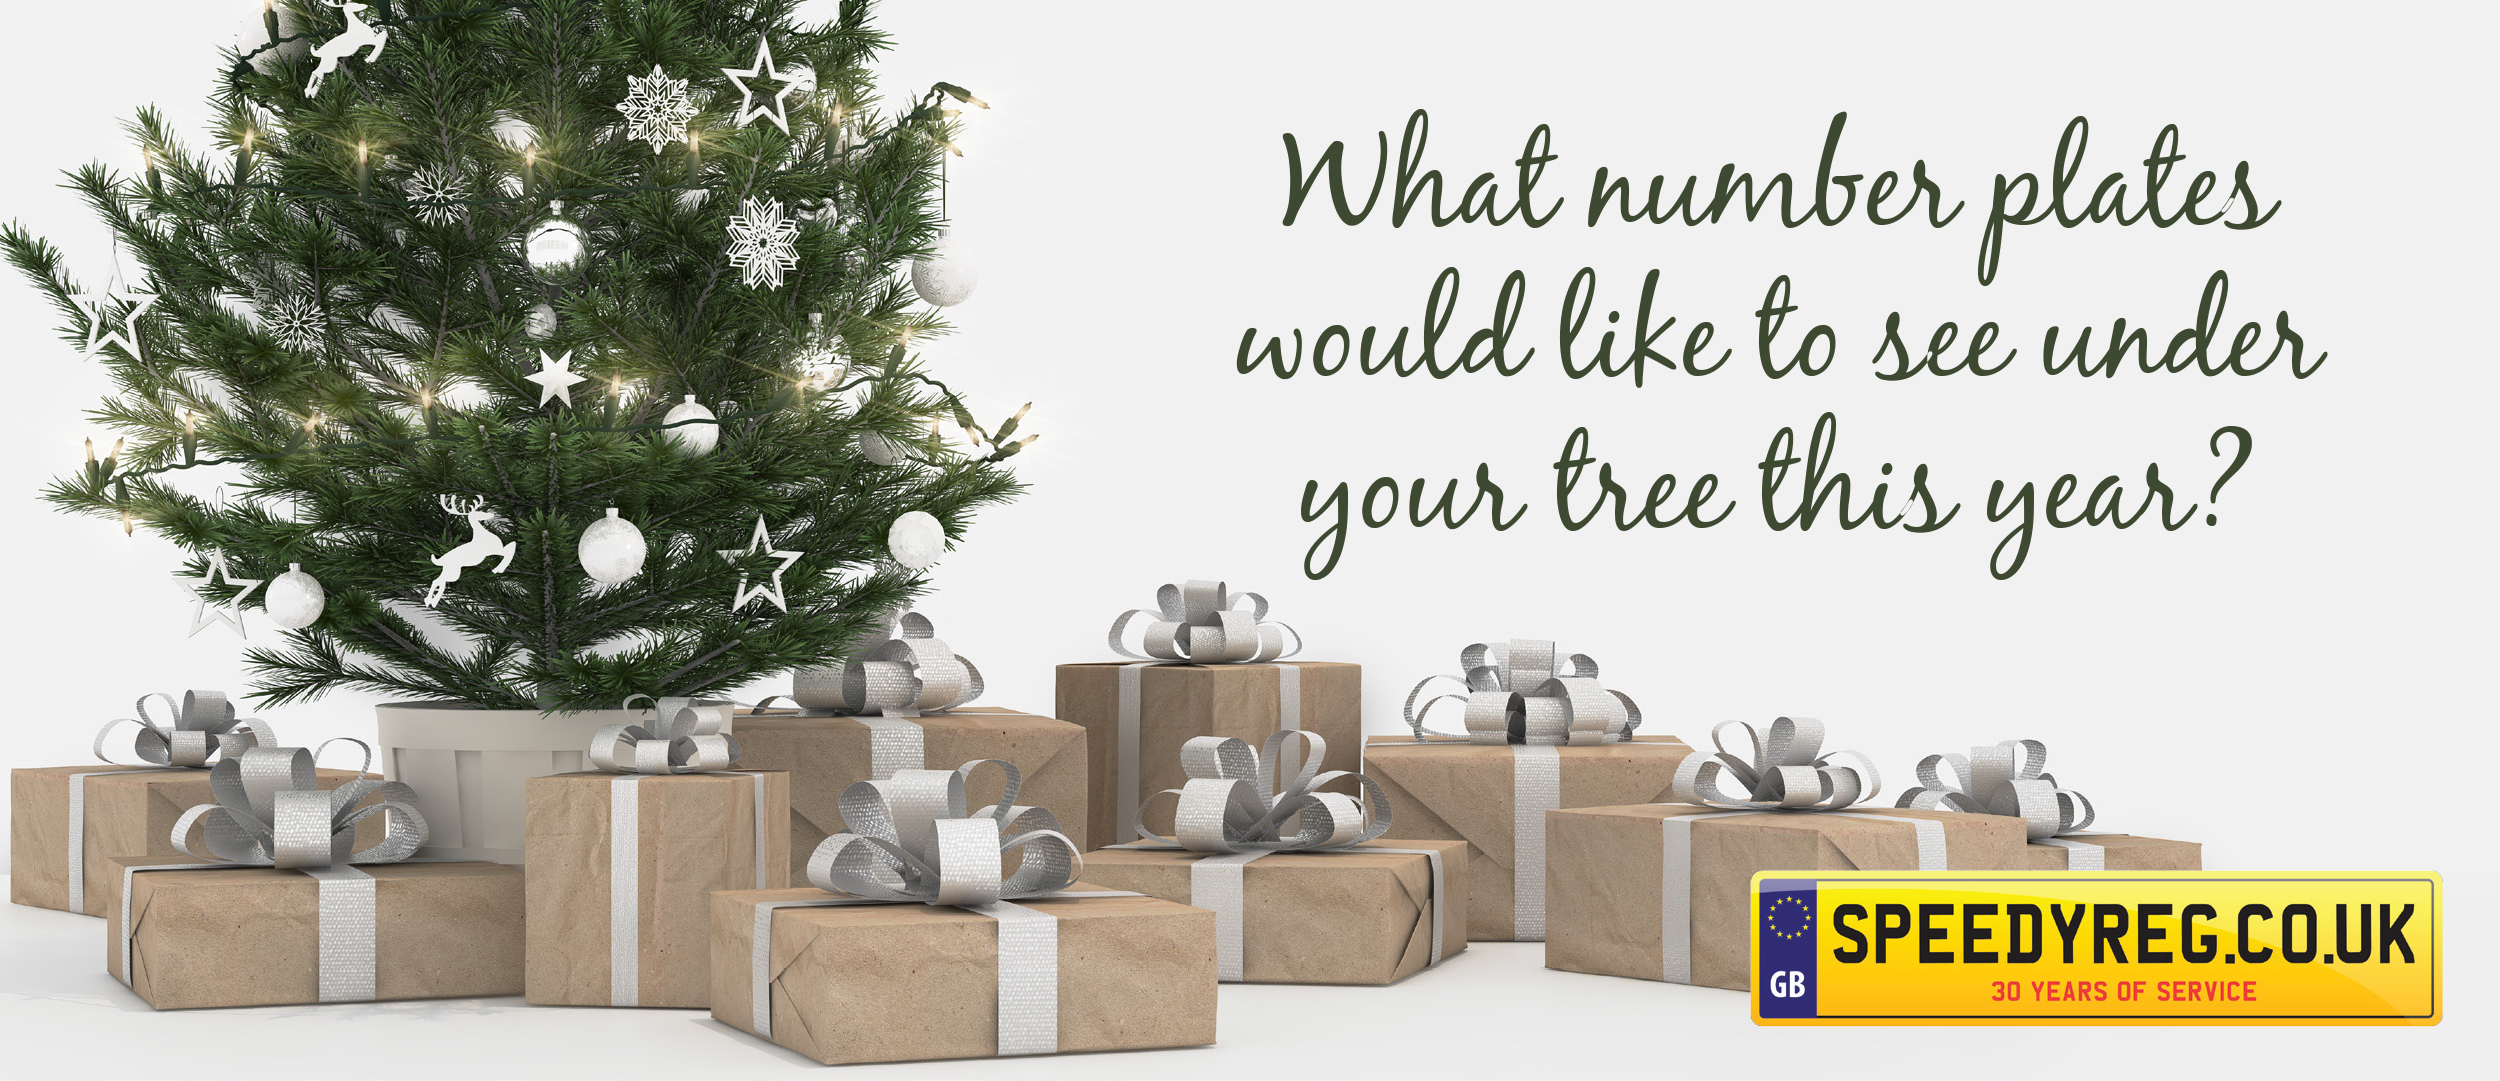 11-what-number-plates-would-like-to-see-under-your-tree-this-year